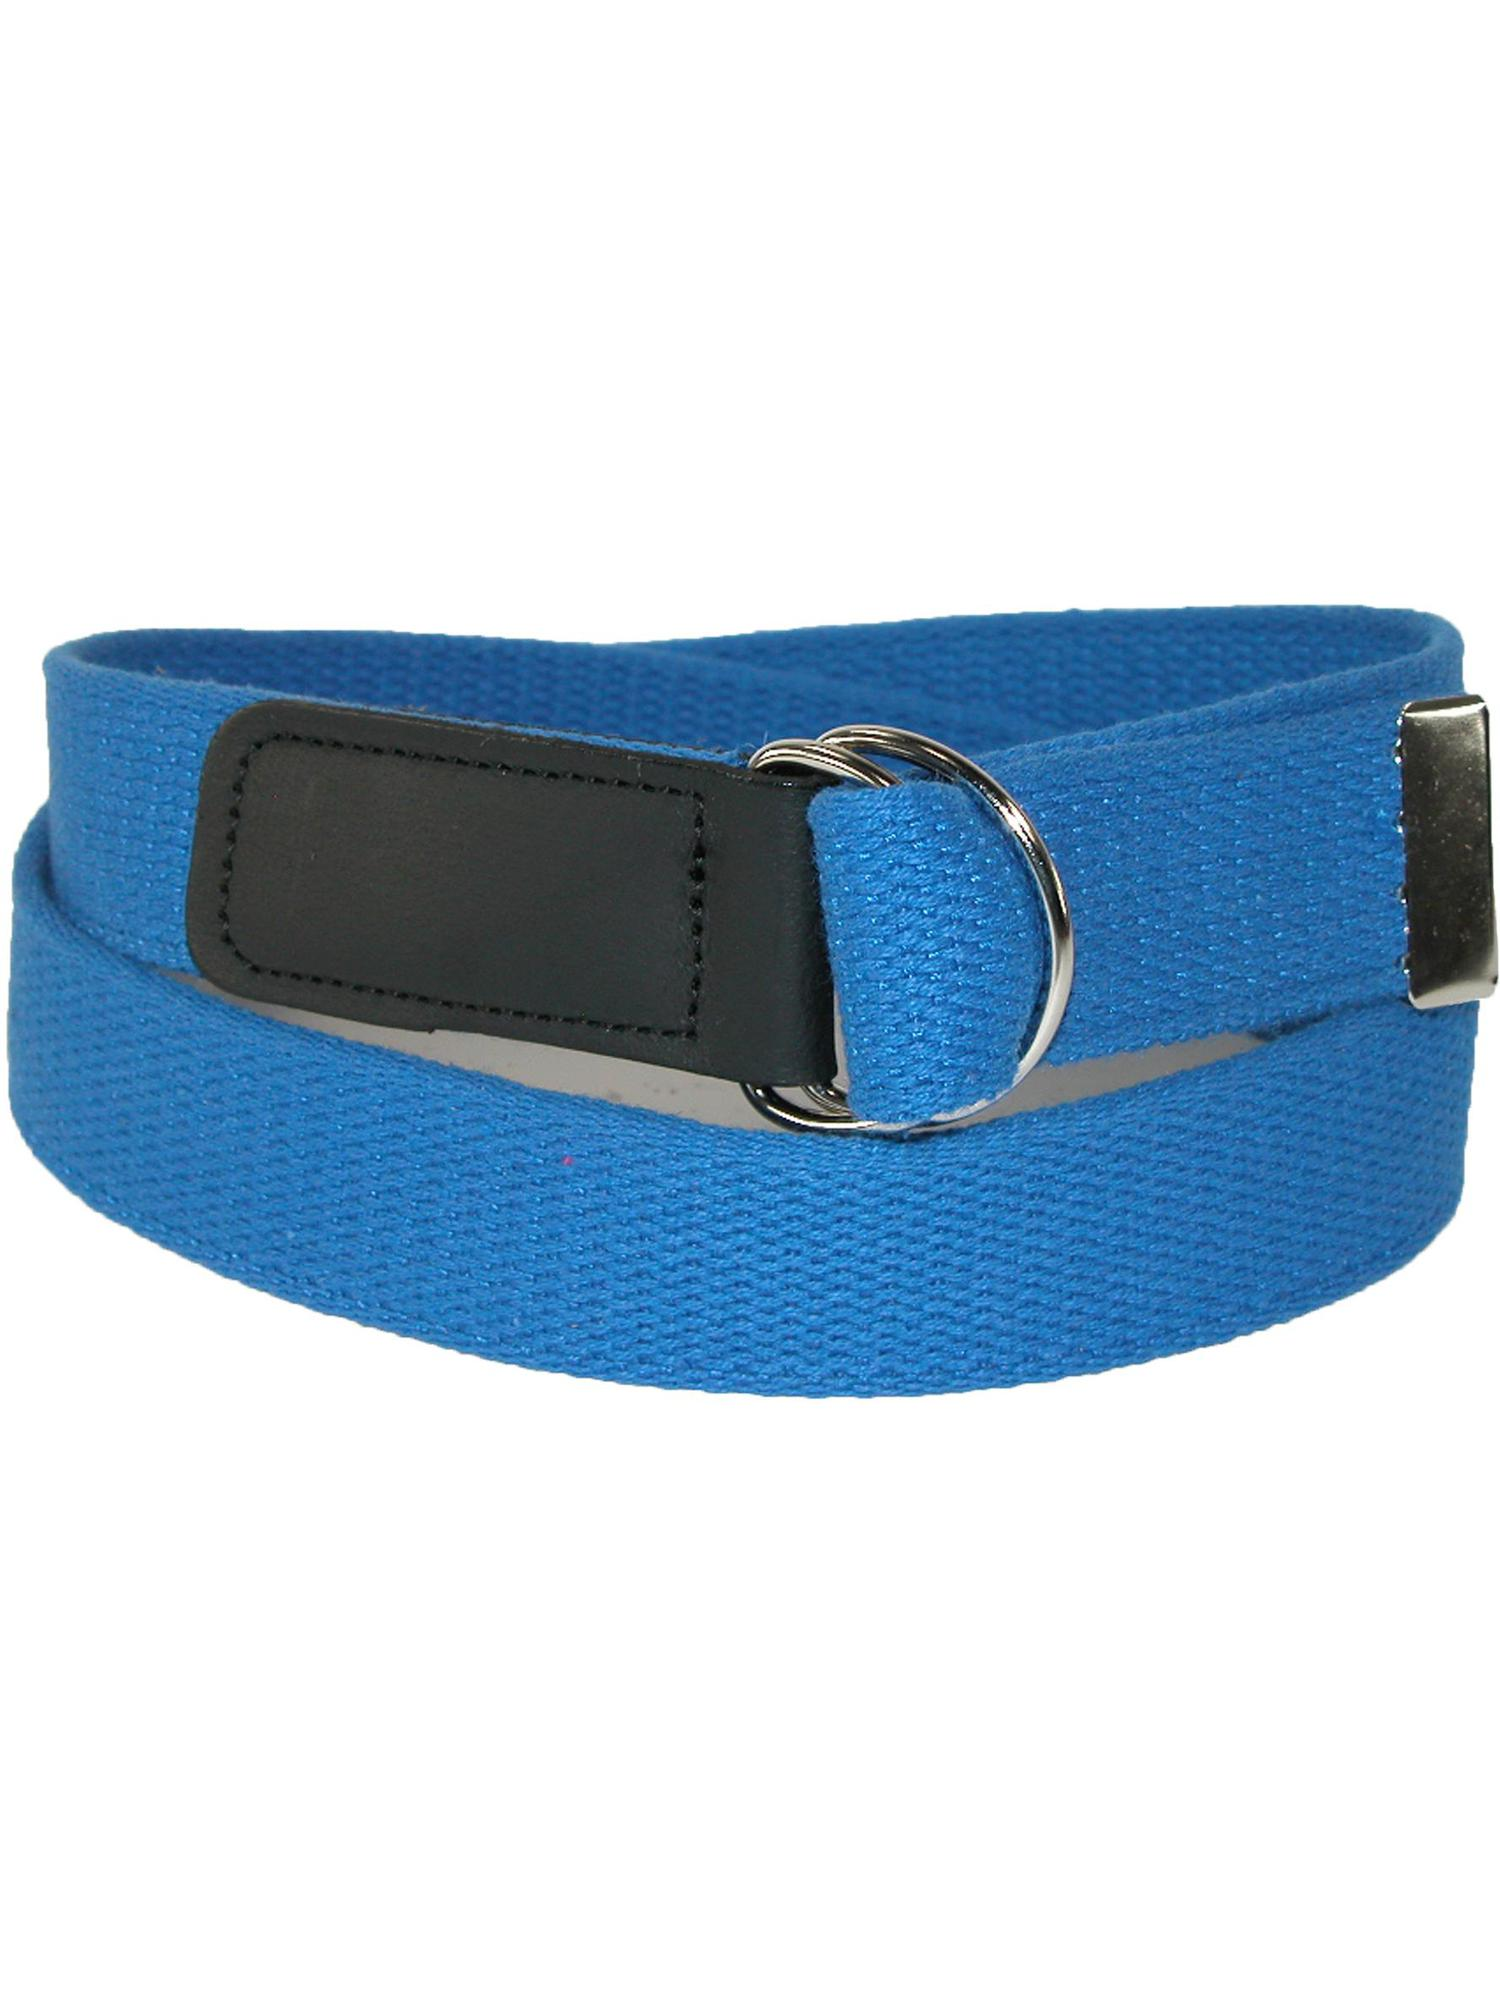 Size one size Cotton Web 1 1/4 Inch Belt with Double D Ring Buckle